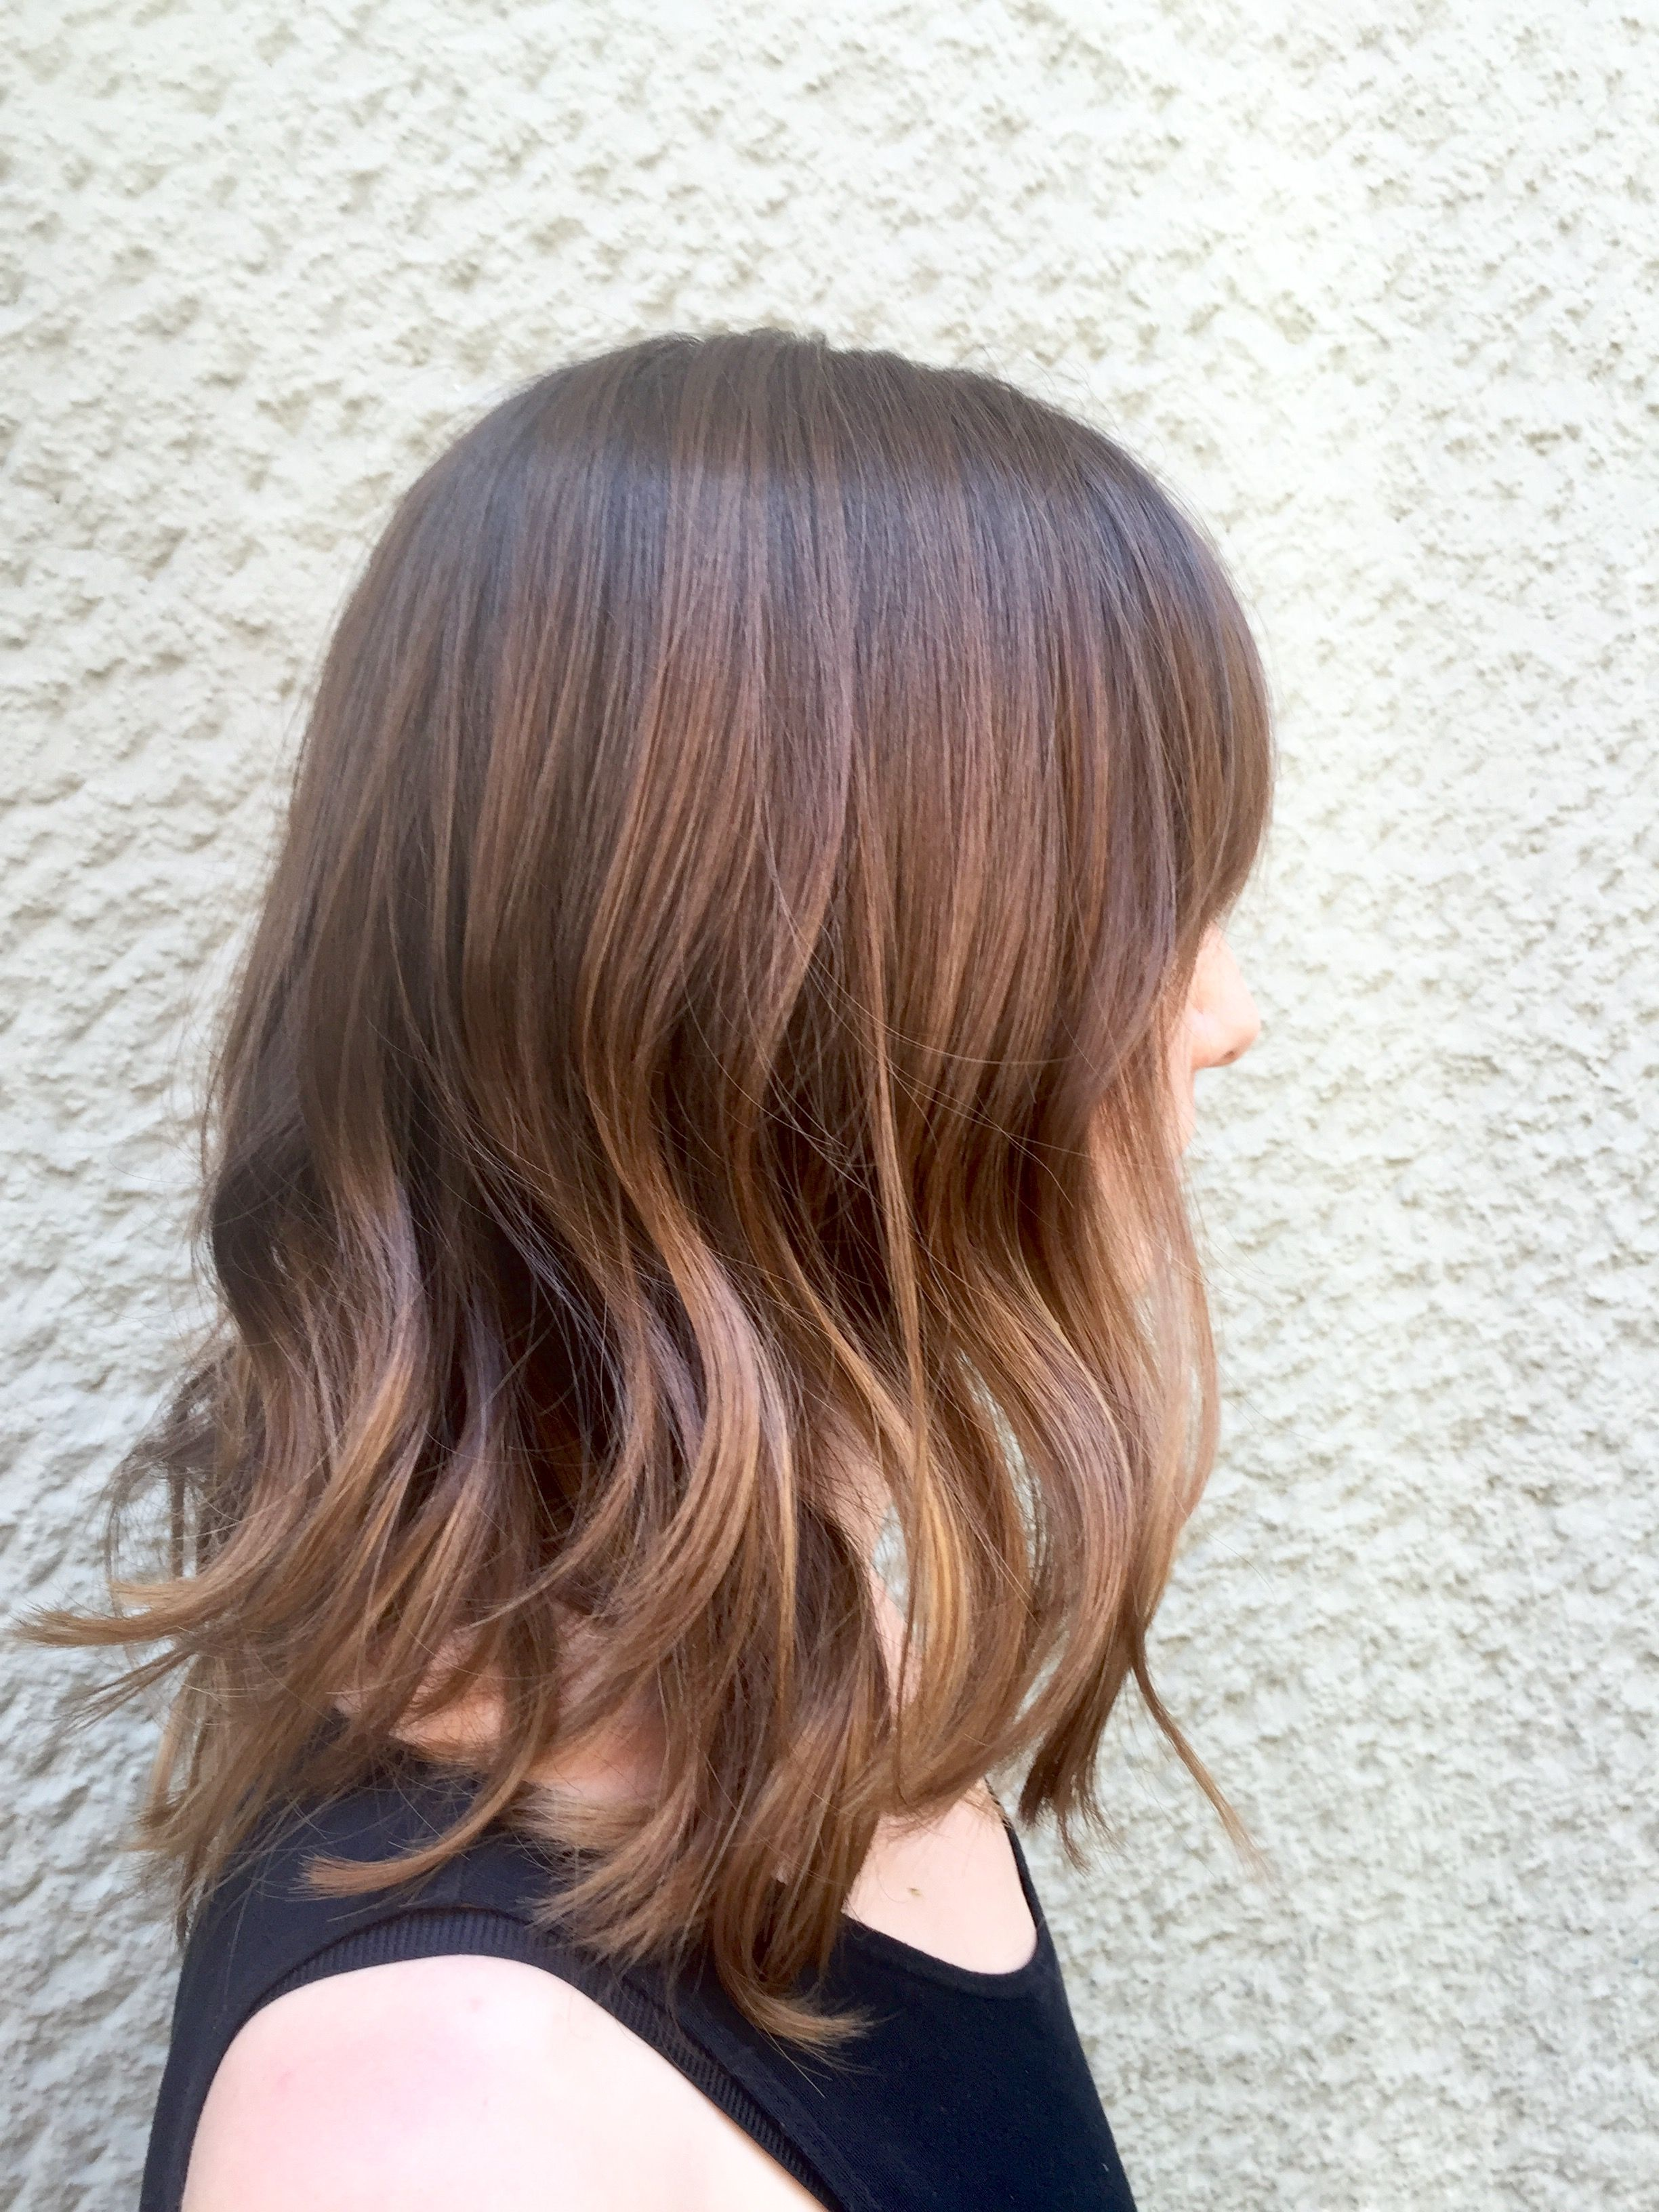 Cut and highlights hair style by me pinterest hair style